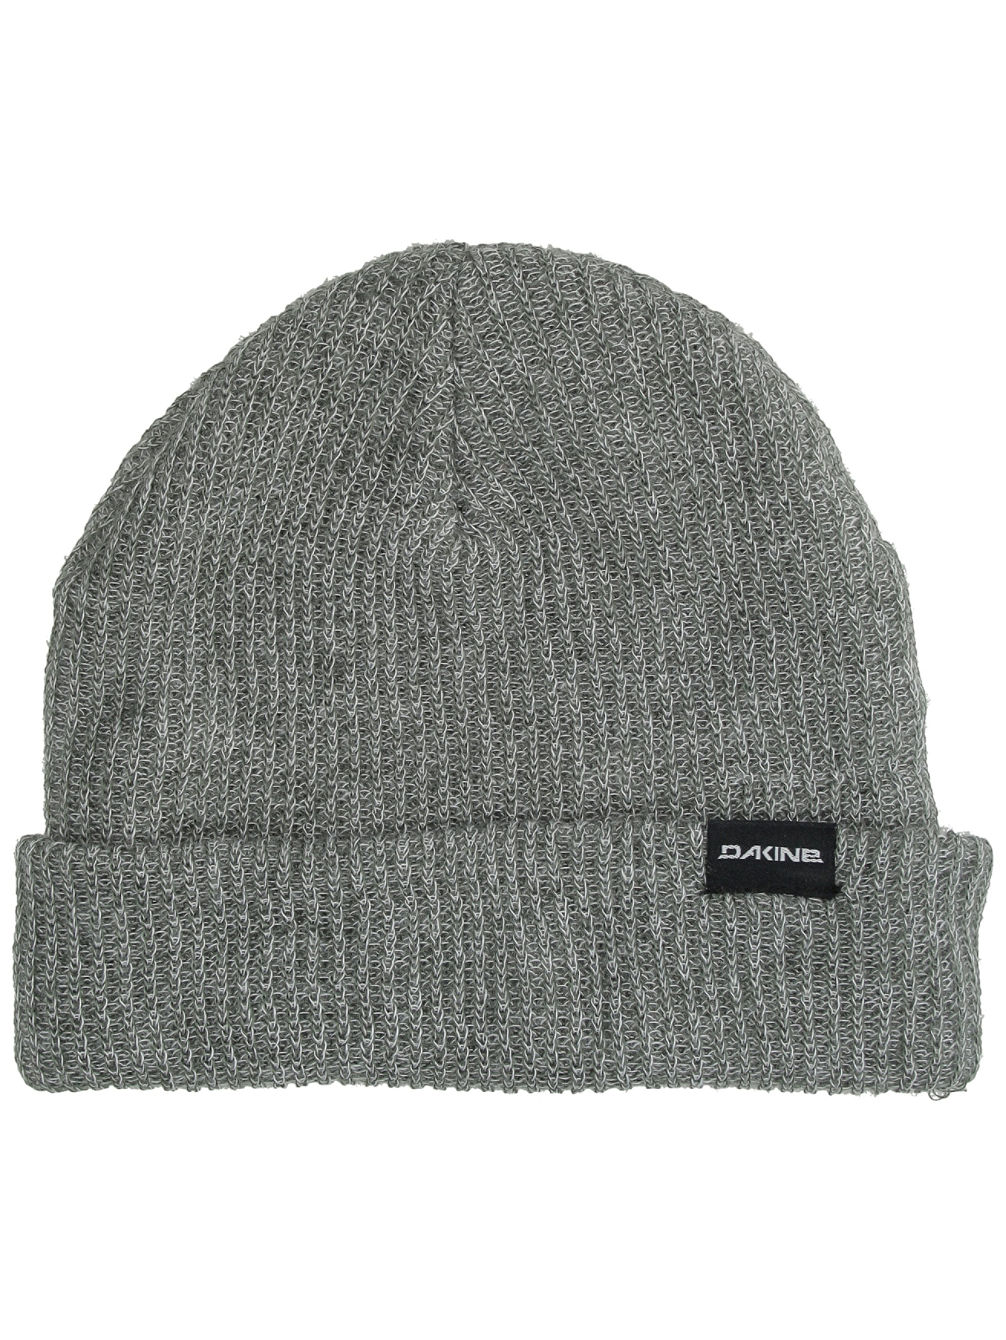 06ff12b5c7d93 Buy Dakine Tall Boy Reverse Beanie online at Blue Tomato